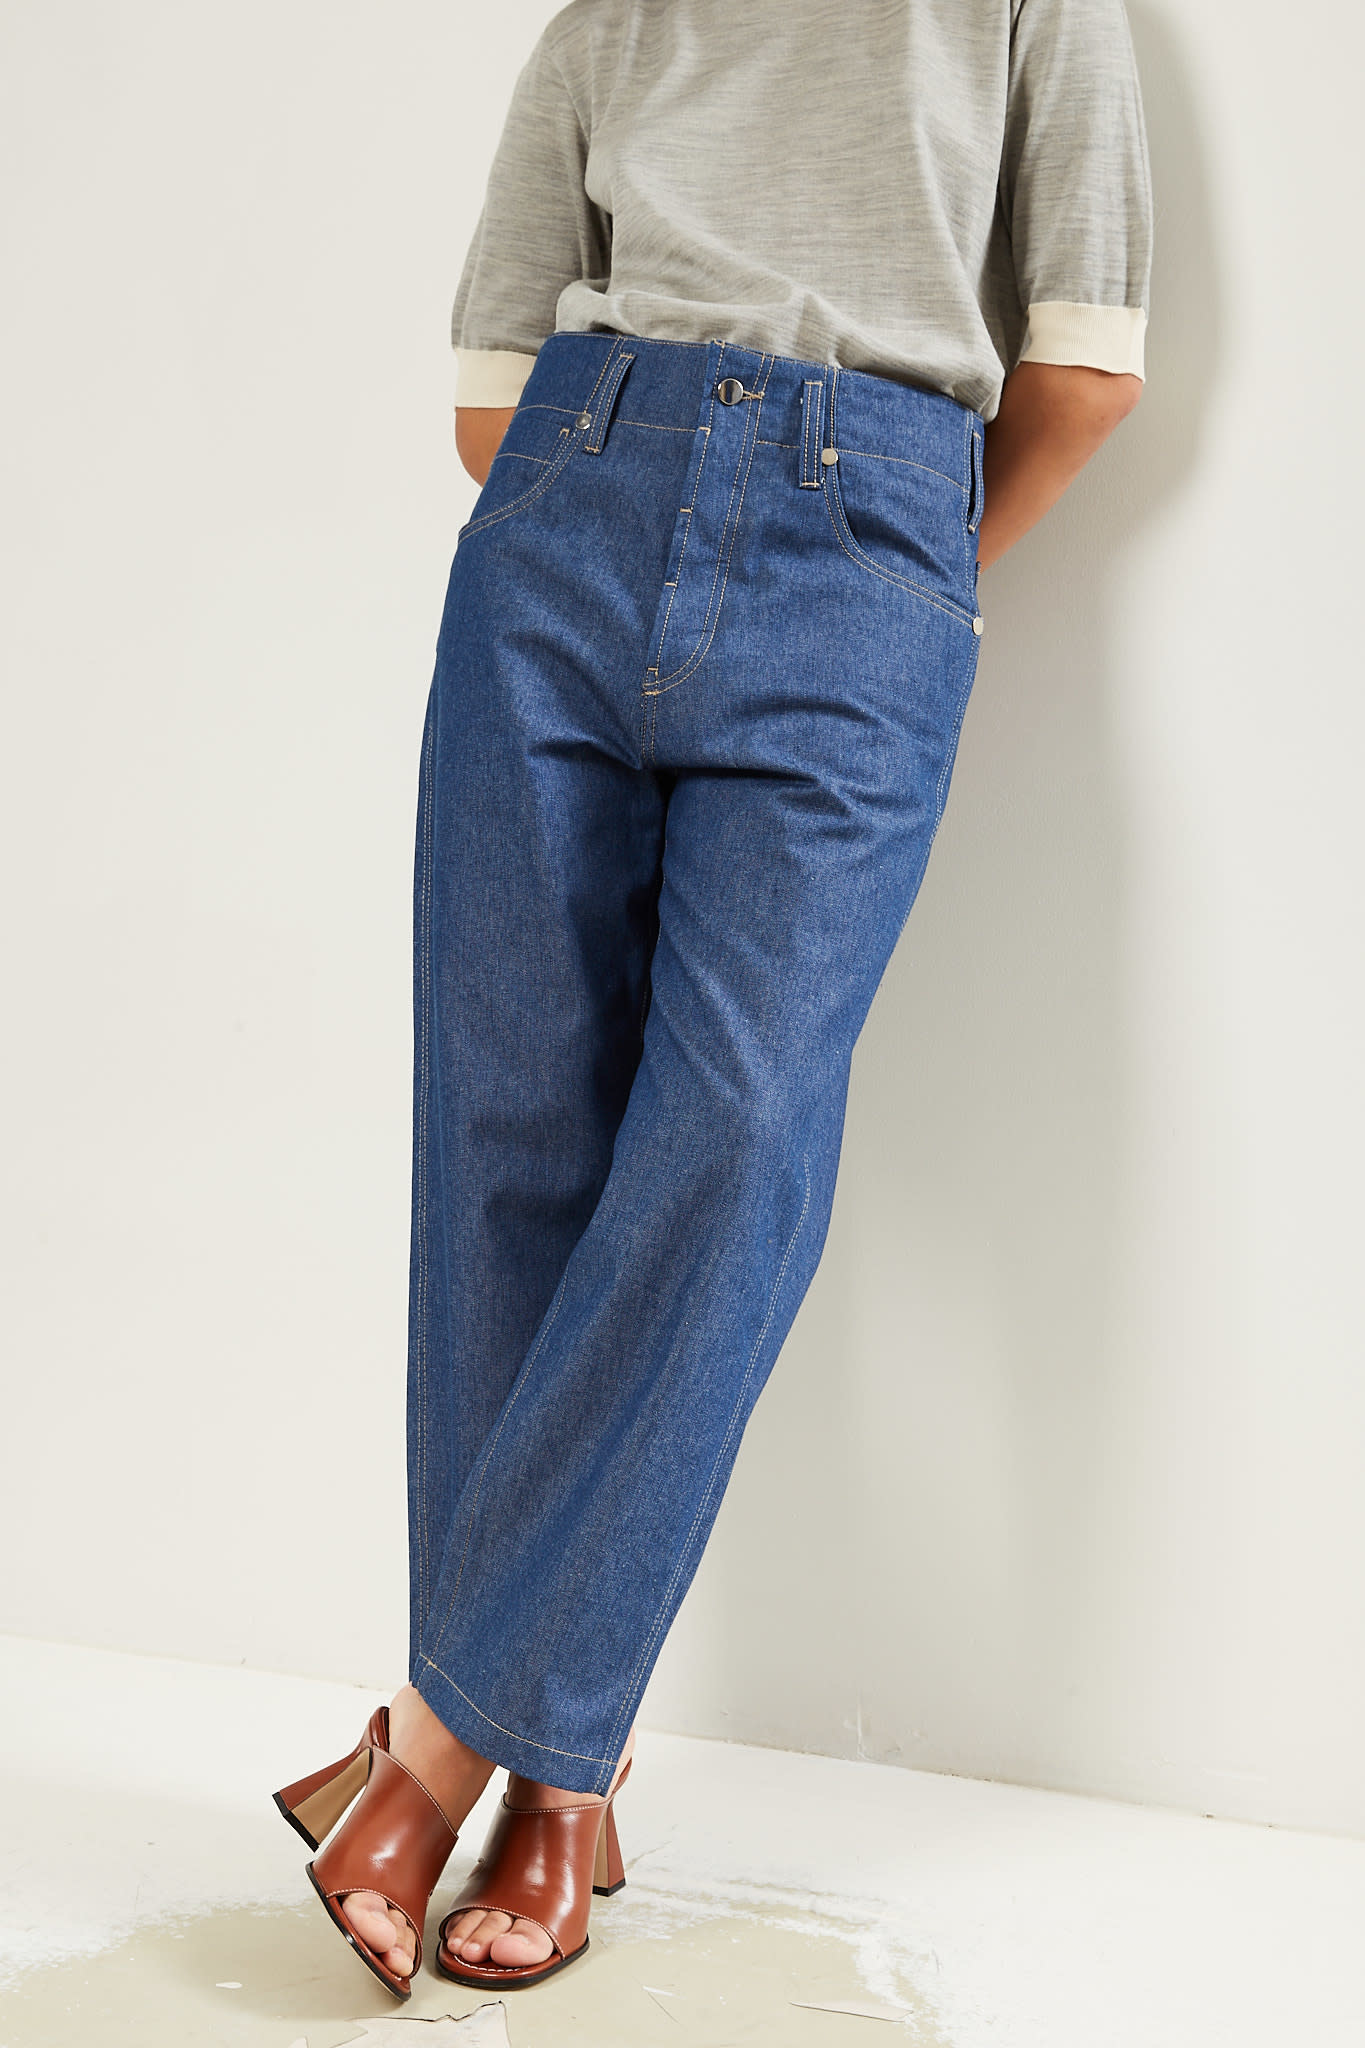 Sofie d'Hoore Pollock light denim pants